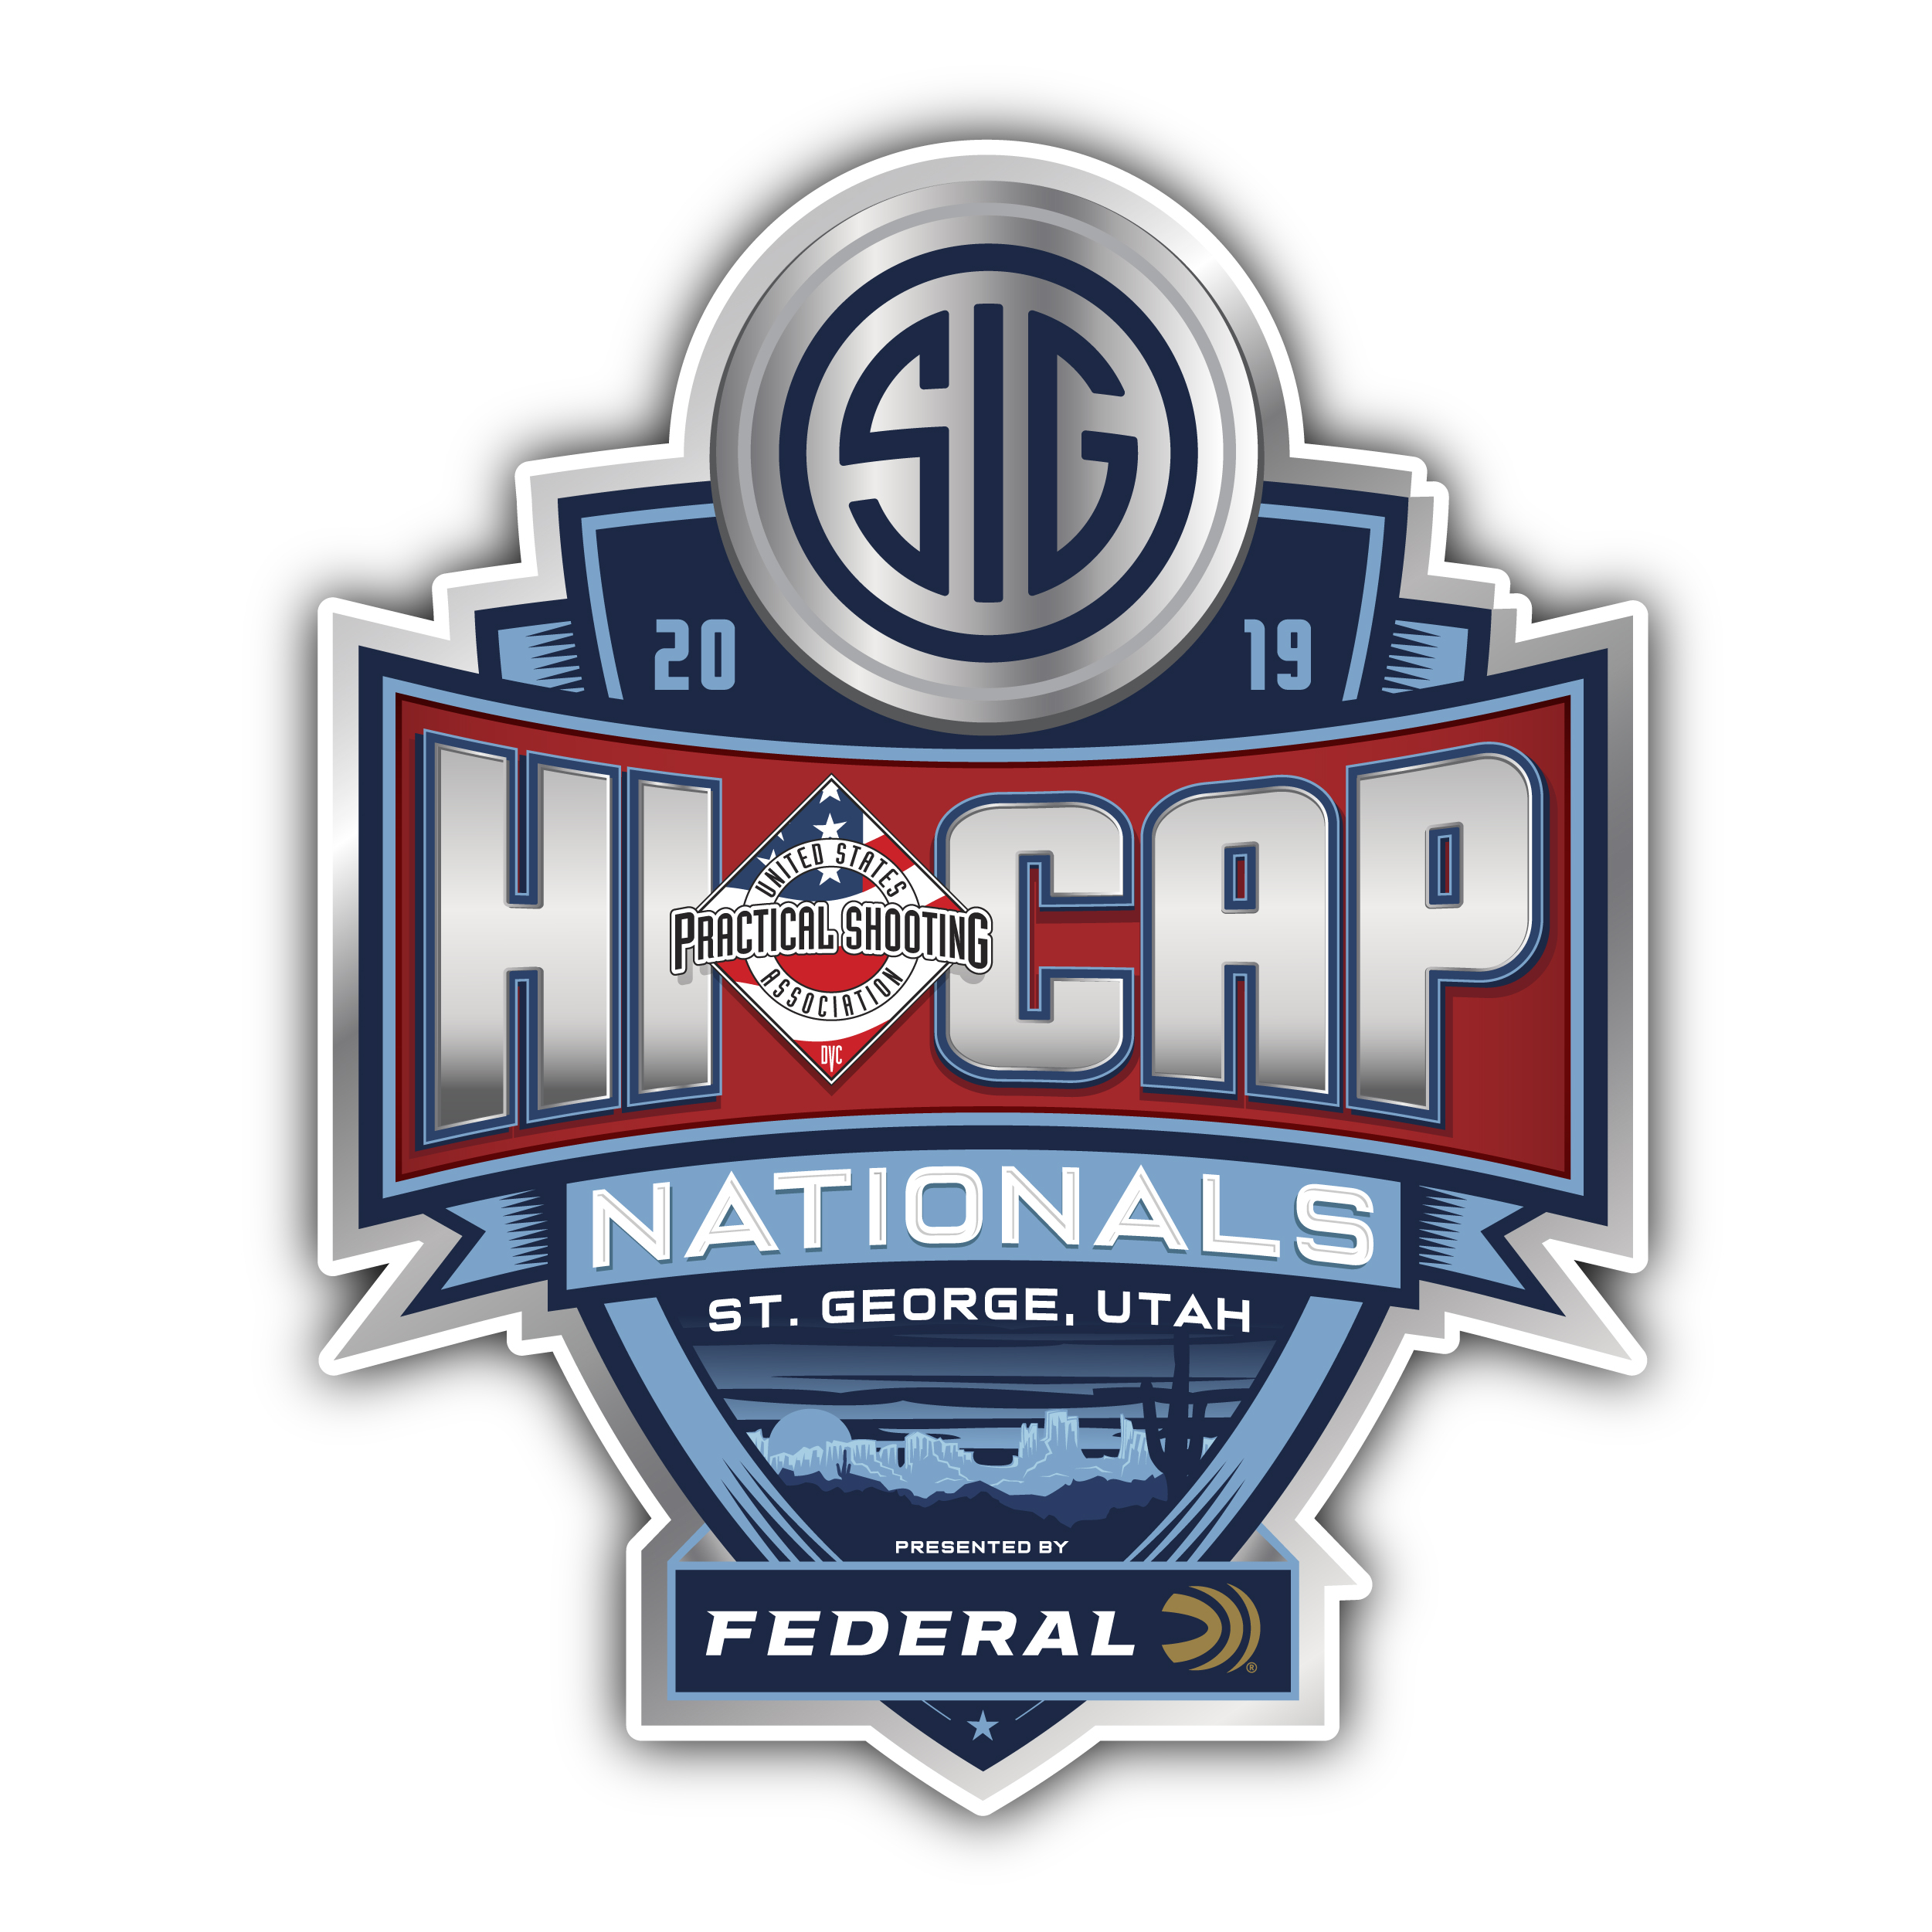 USPSA Hi-Cap Nationals 2019